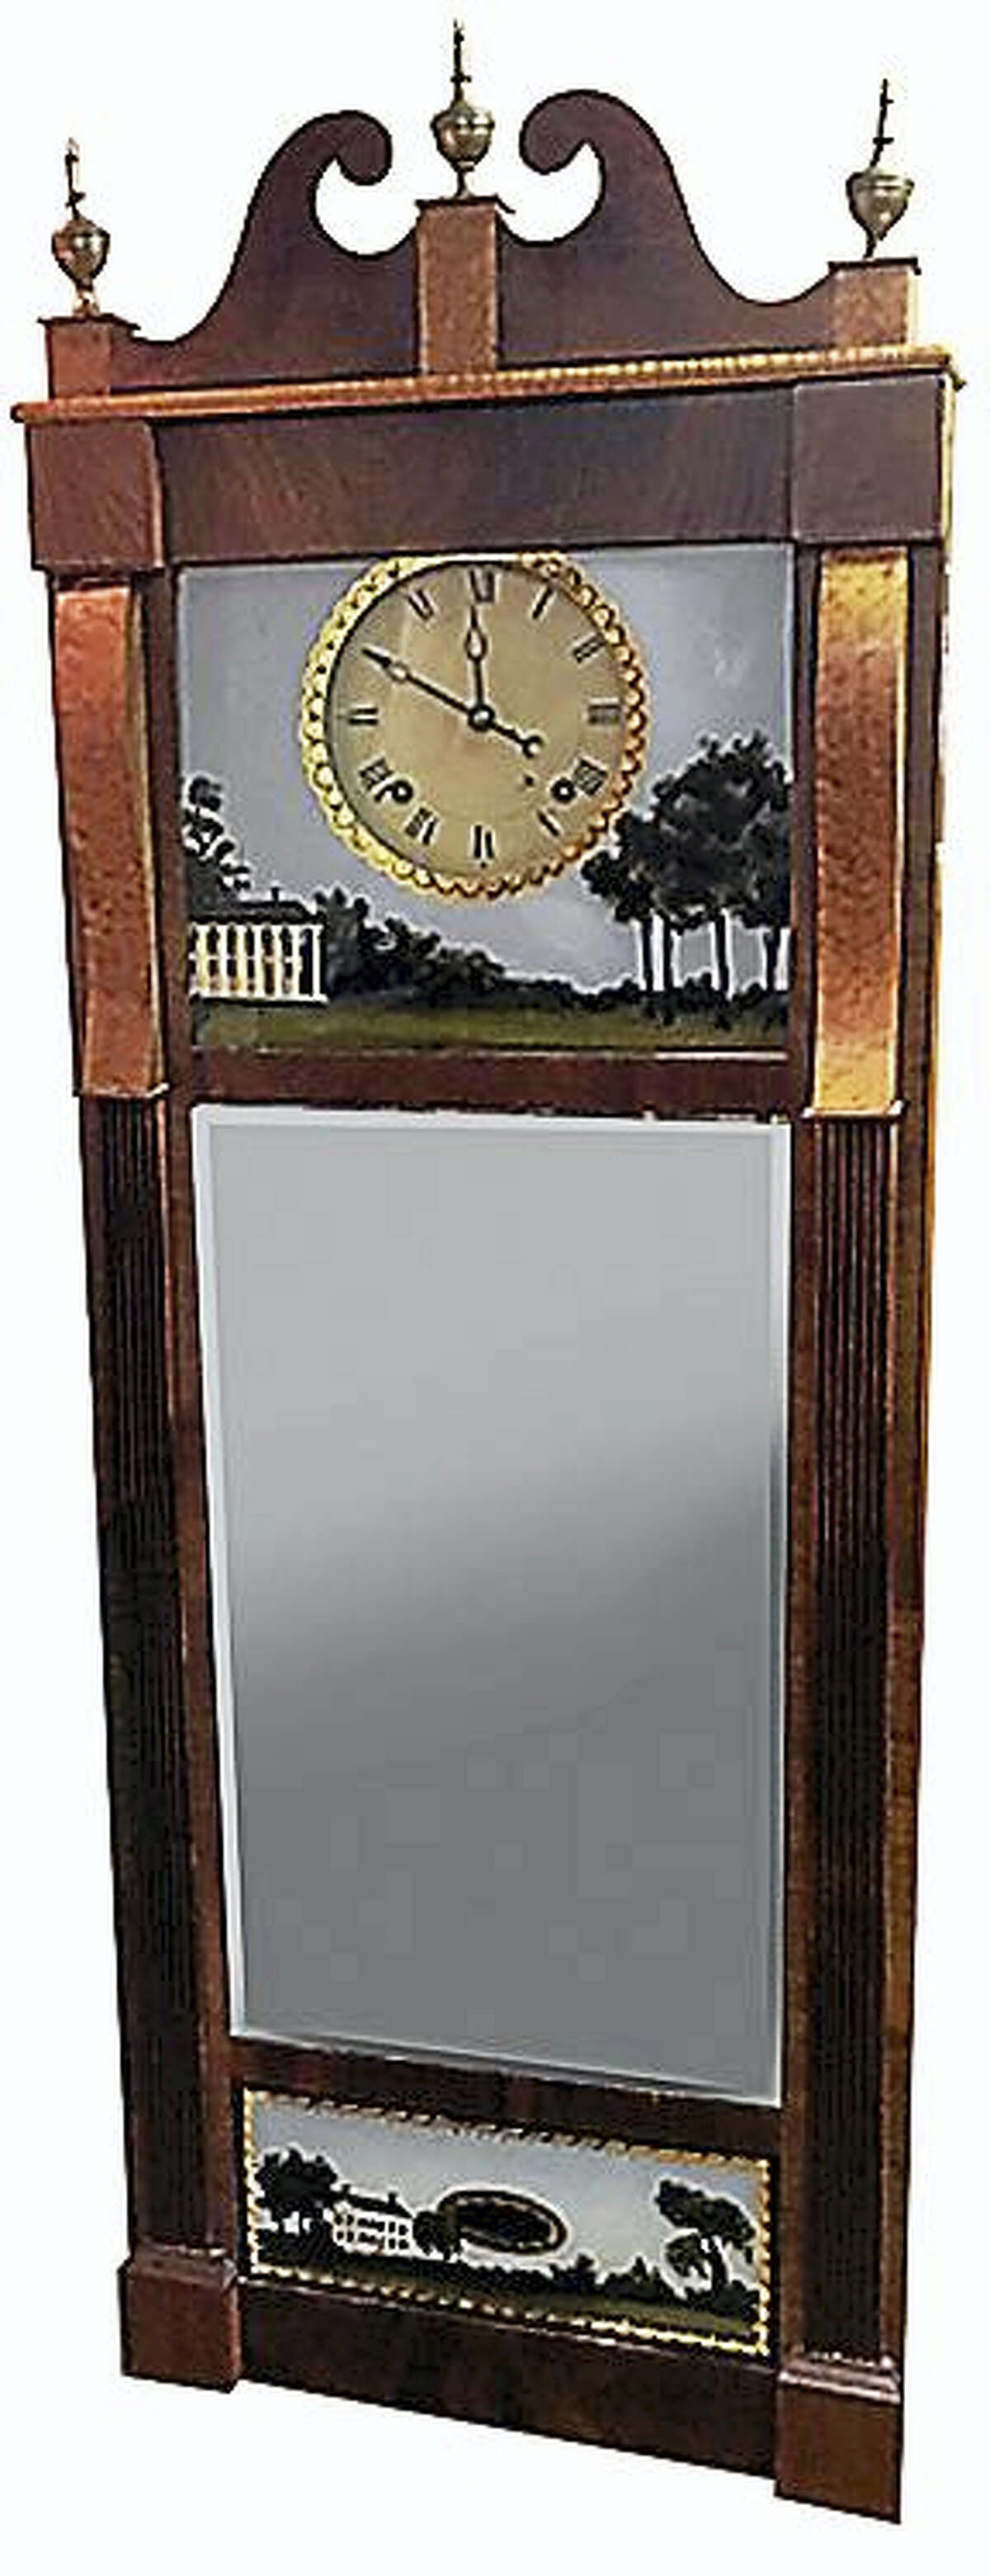 Contributed photoAn Ives clock.